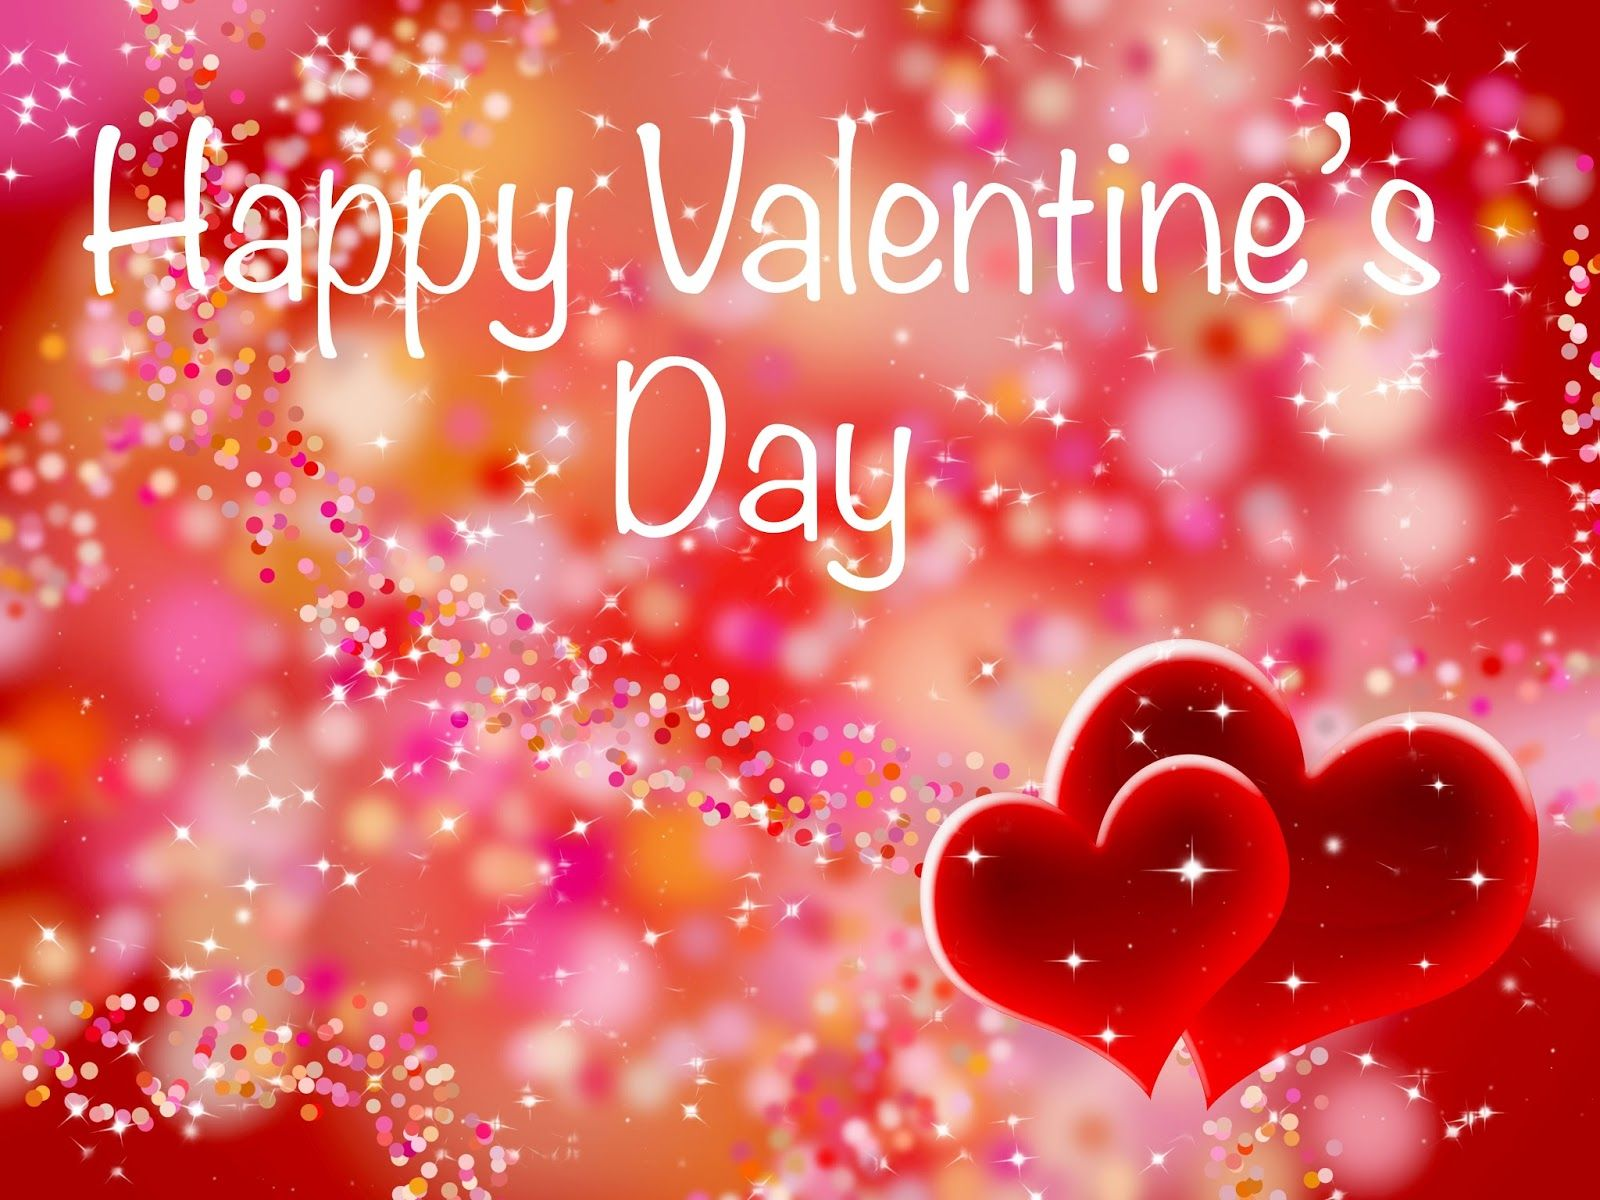 Happy Valentines day images pictures wallpapers Photos for 1600x1200